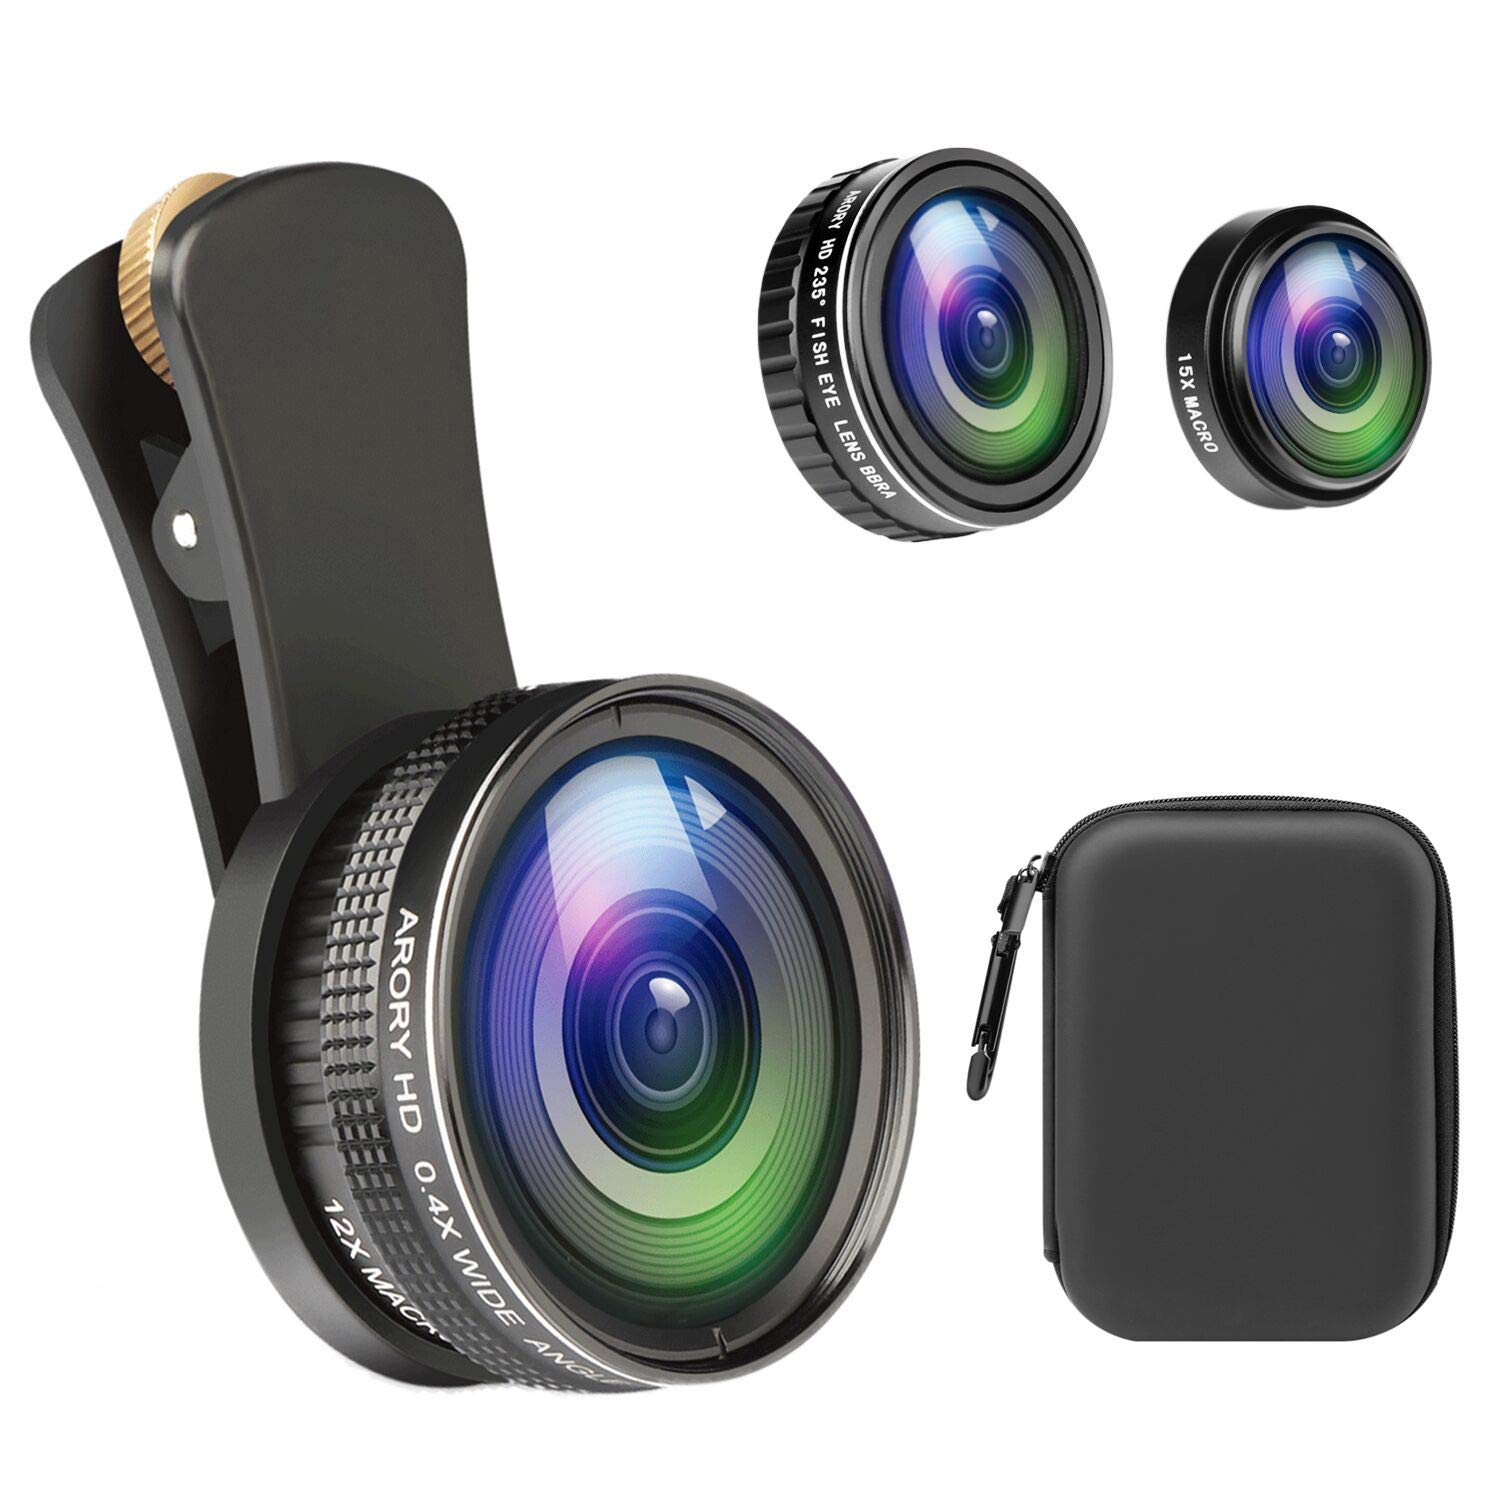 Phone Camera Lens,ARORY Pro Photography Lens Kit for iPhone, Samsung, Pixel,235°Fisheye Lens & 15X Macro+0.4X Wide Angle & 12x Macro with EVA Travel Case by ARORY